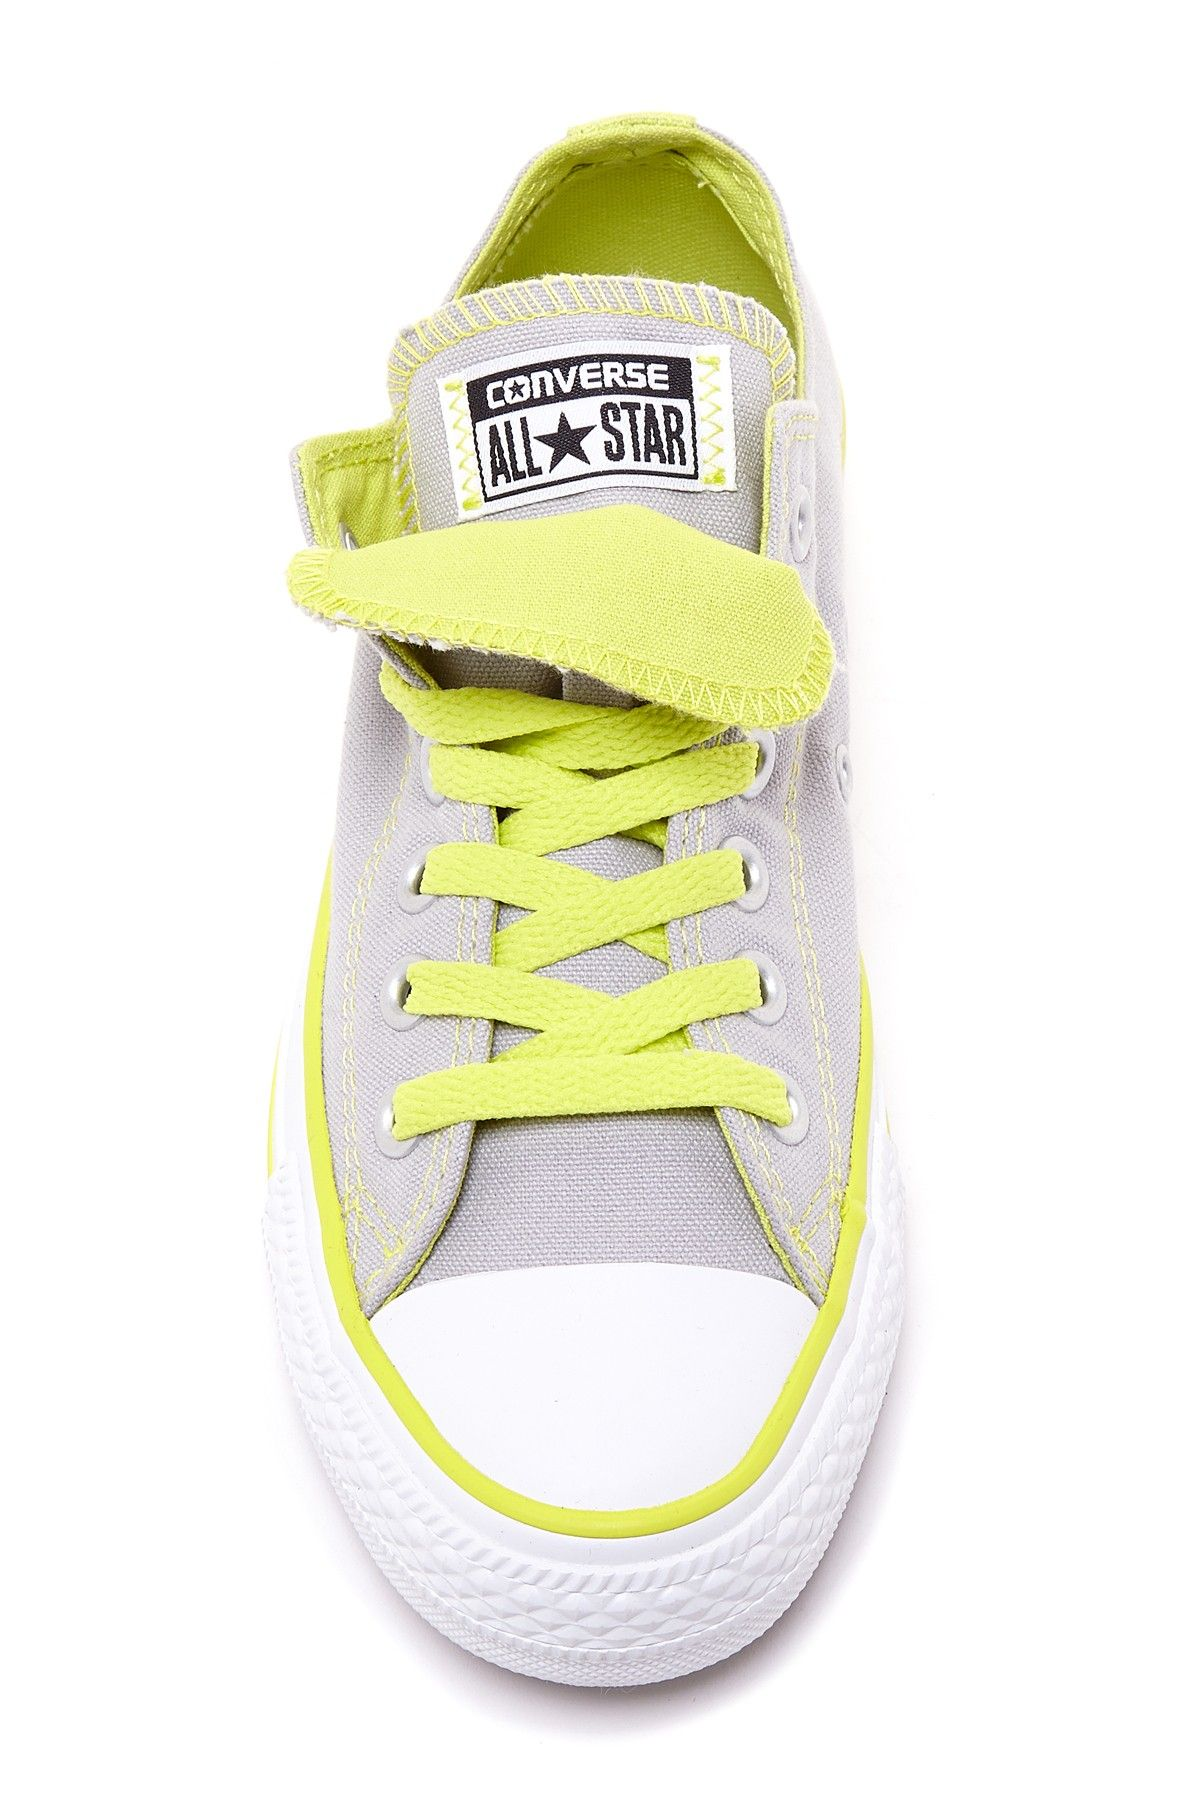 81fa26c060166f Converse Chuck Taylor - Double Tongue Oxford Sneaker - Gray and Yellow